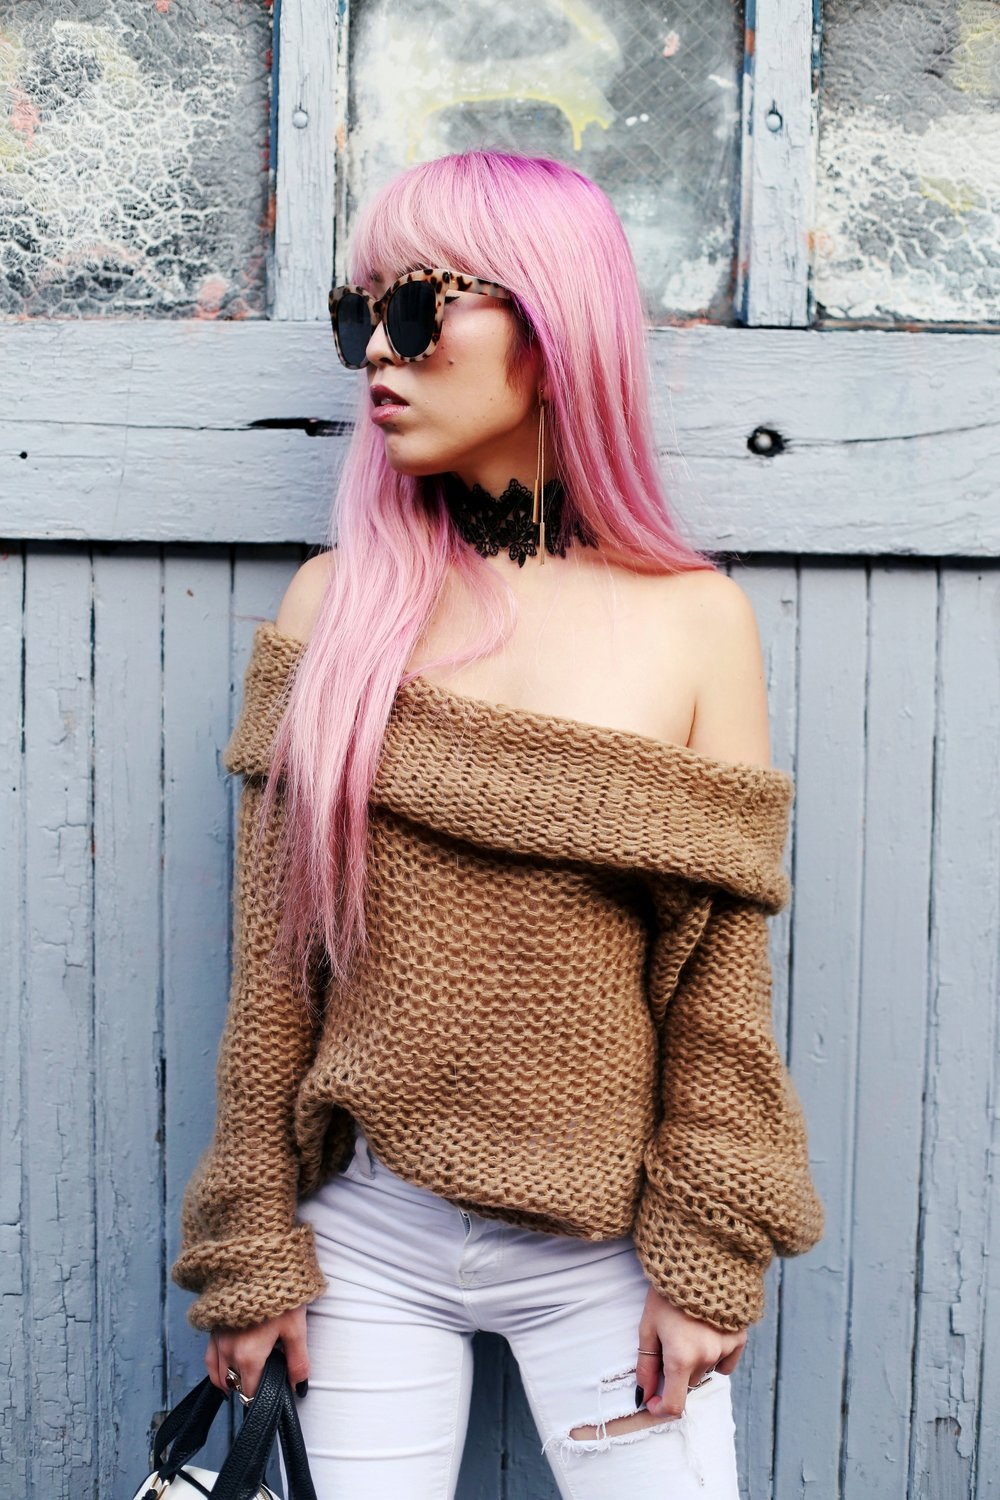 Urban Outfitters Sunglasses_Camel Off The Shoulder Sweater_TOPSHOP white jeans_ZARA Bag_ASOS Snake Skin Heels_Shop Dixi Lace Choker_Aika's Love Closet_Seattle Fashion Blogger_Japanese_Pink Hair_Colored Hair 18